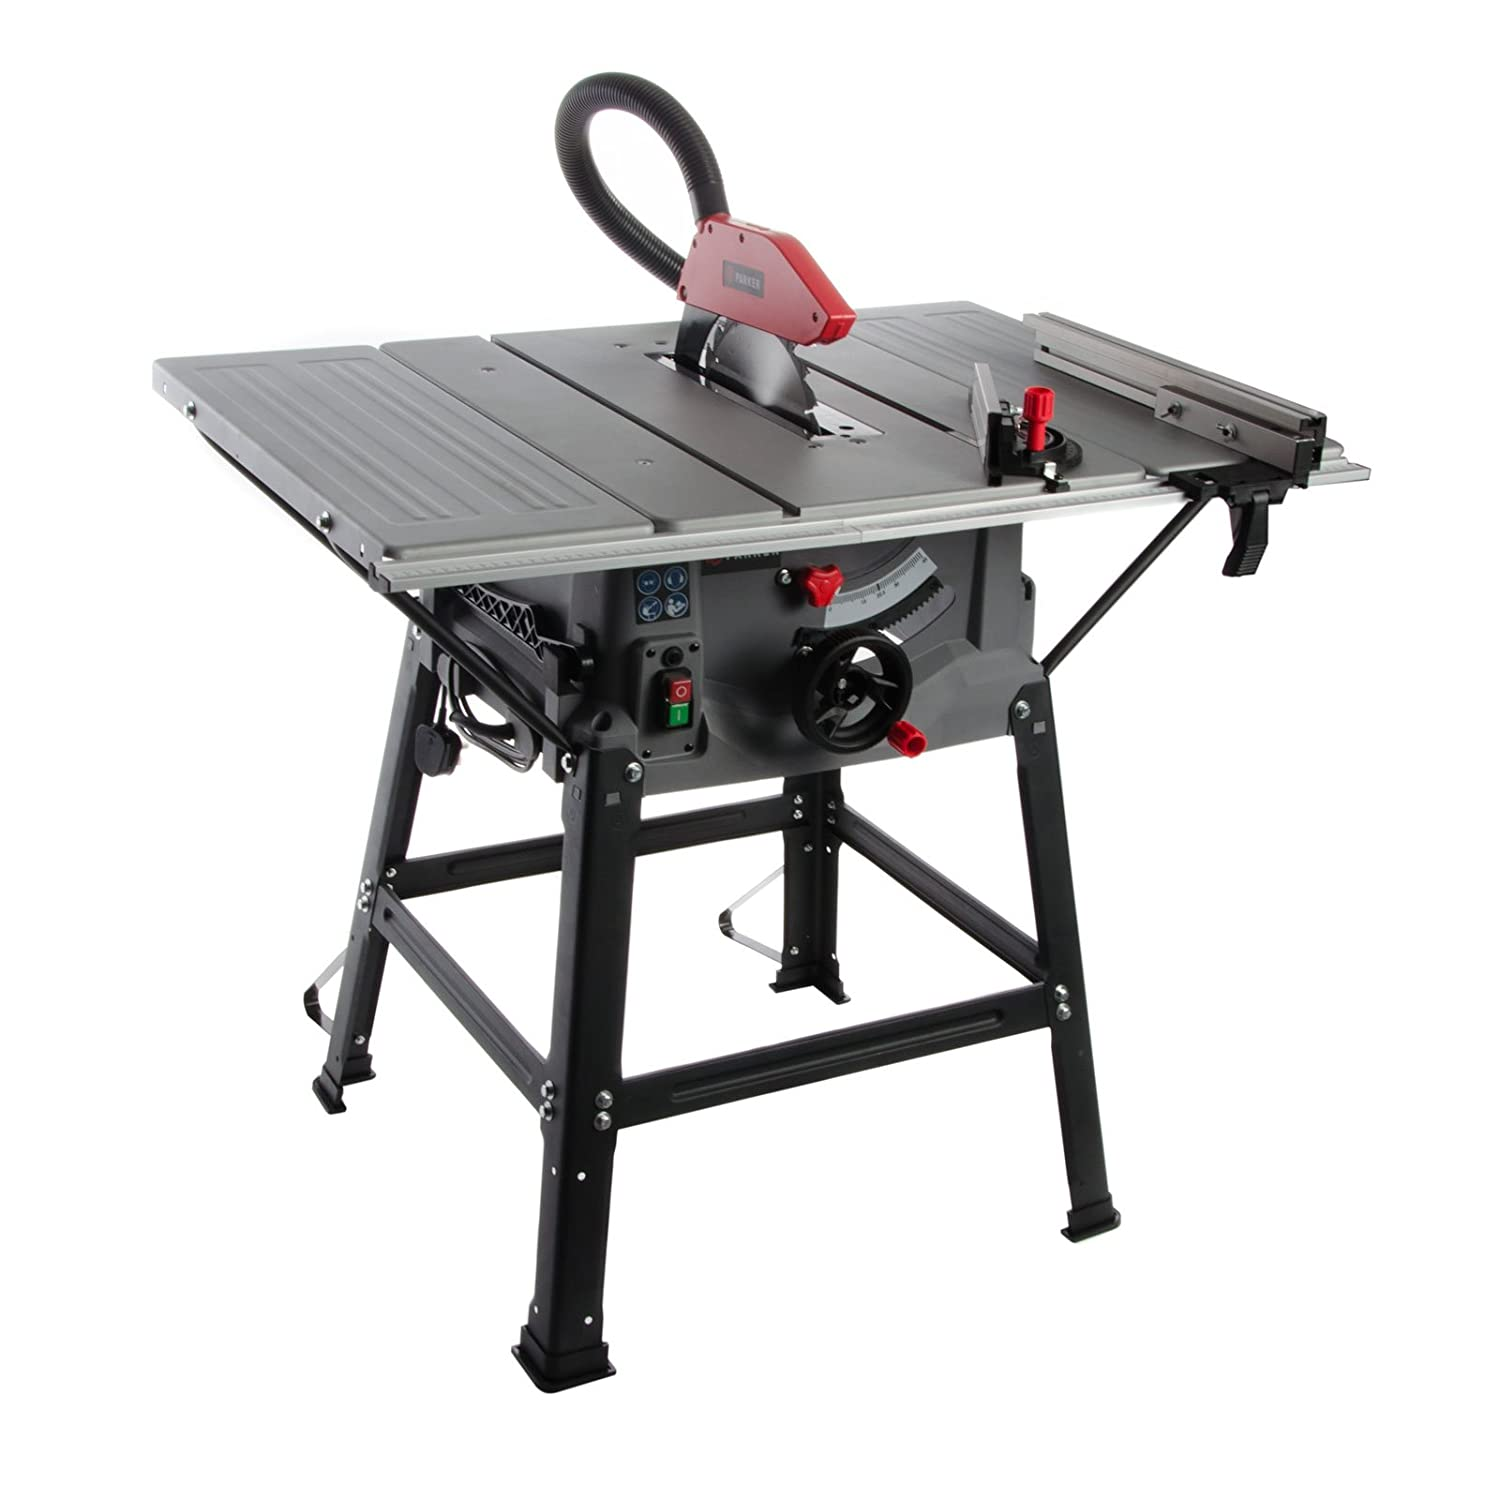 ts saw web contractor hybrid table industrial baileigh